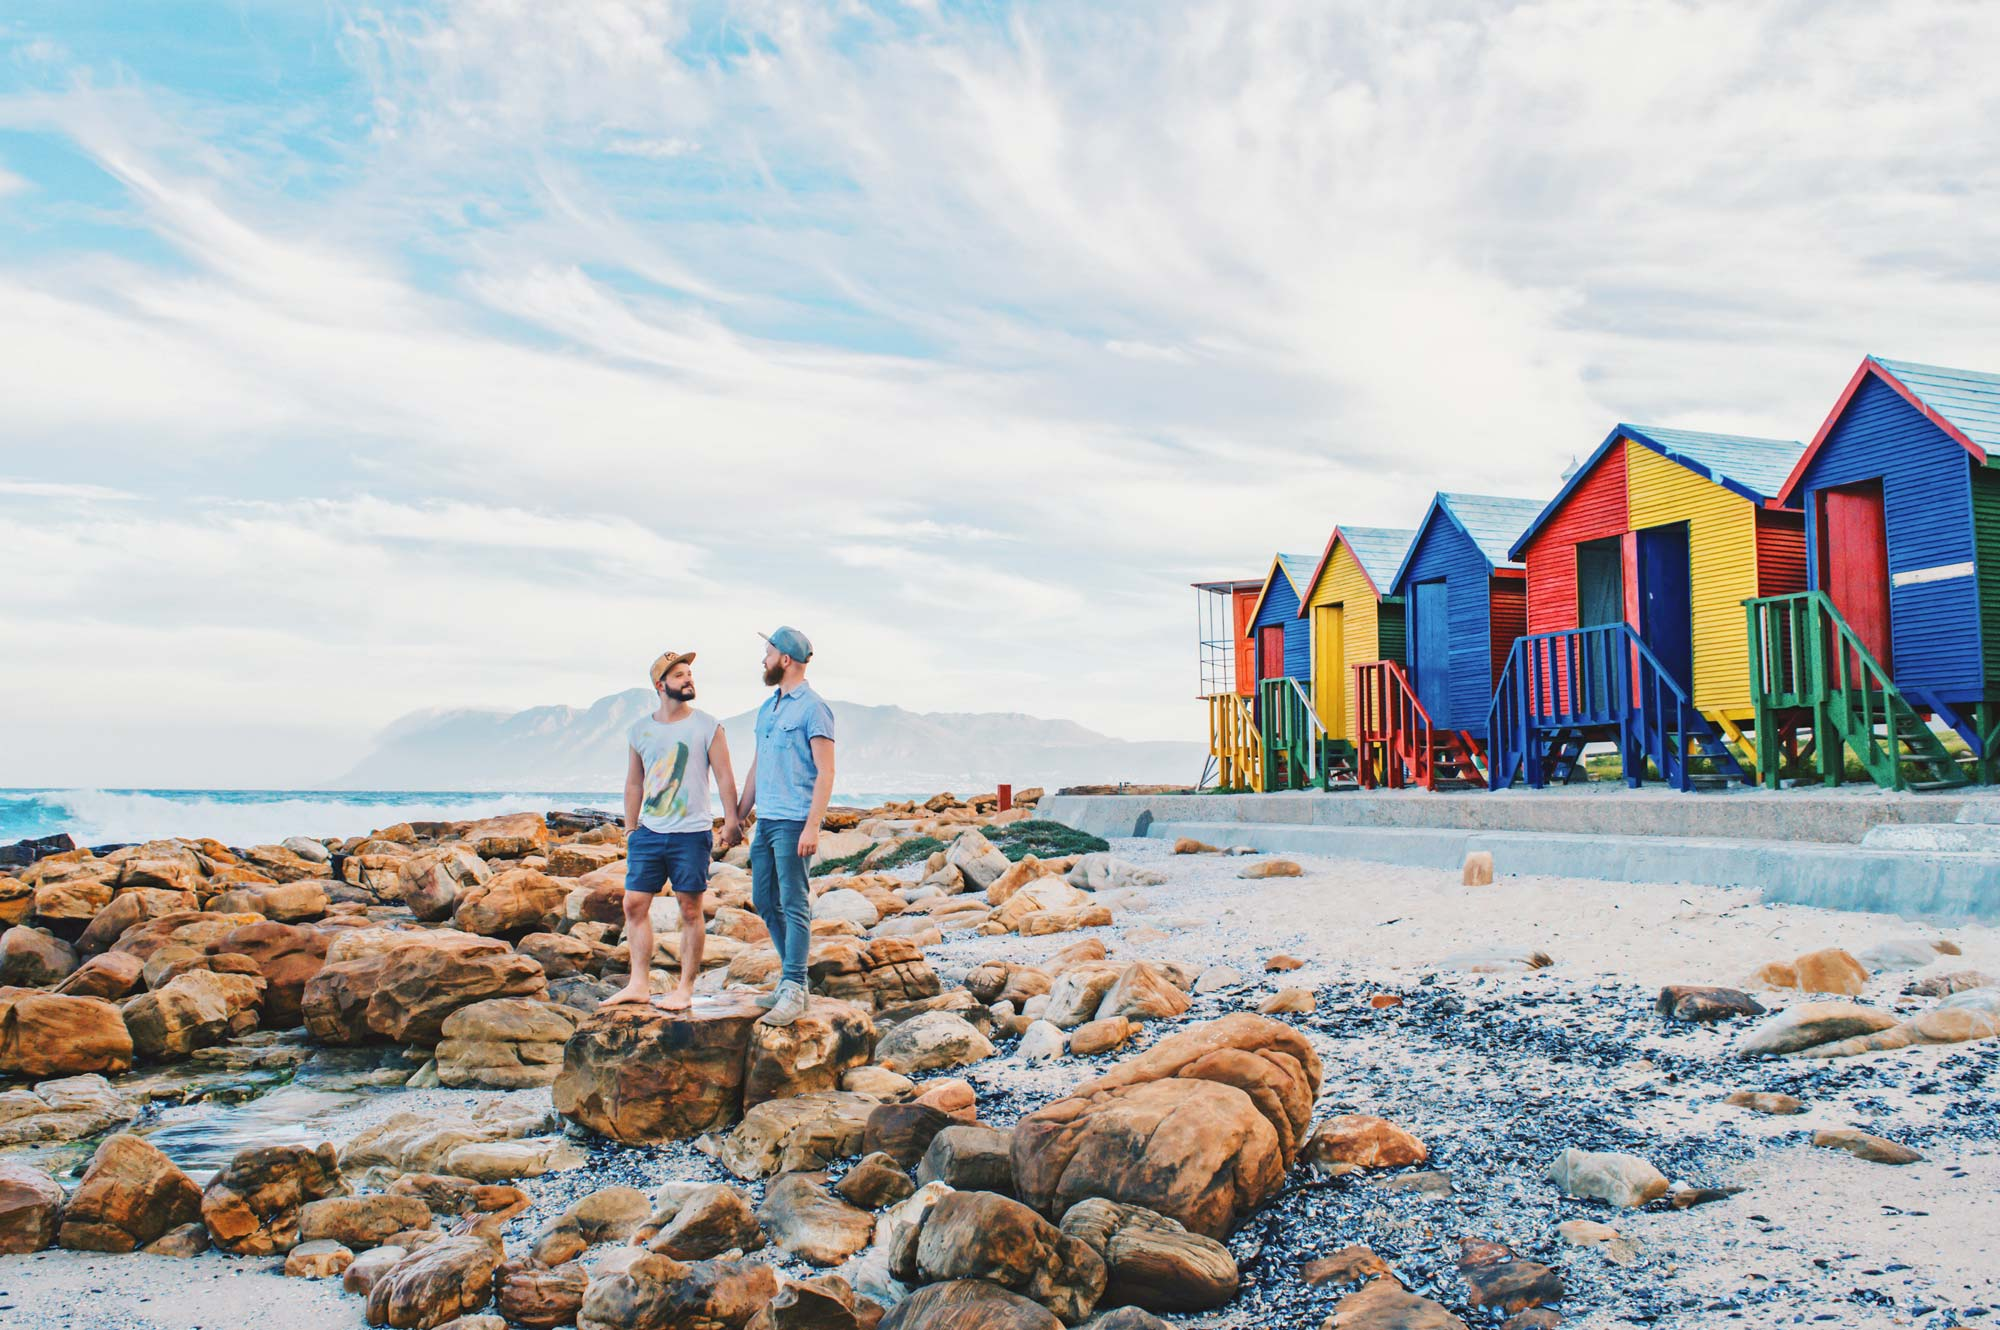 Gay Travel Cape Town: 3 Adventure Days in the South - Part 2